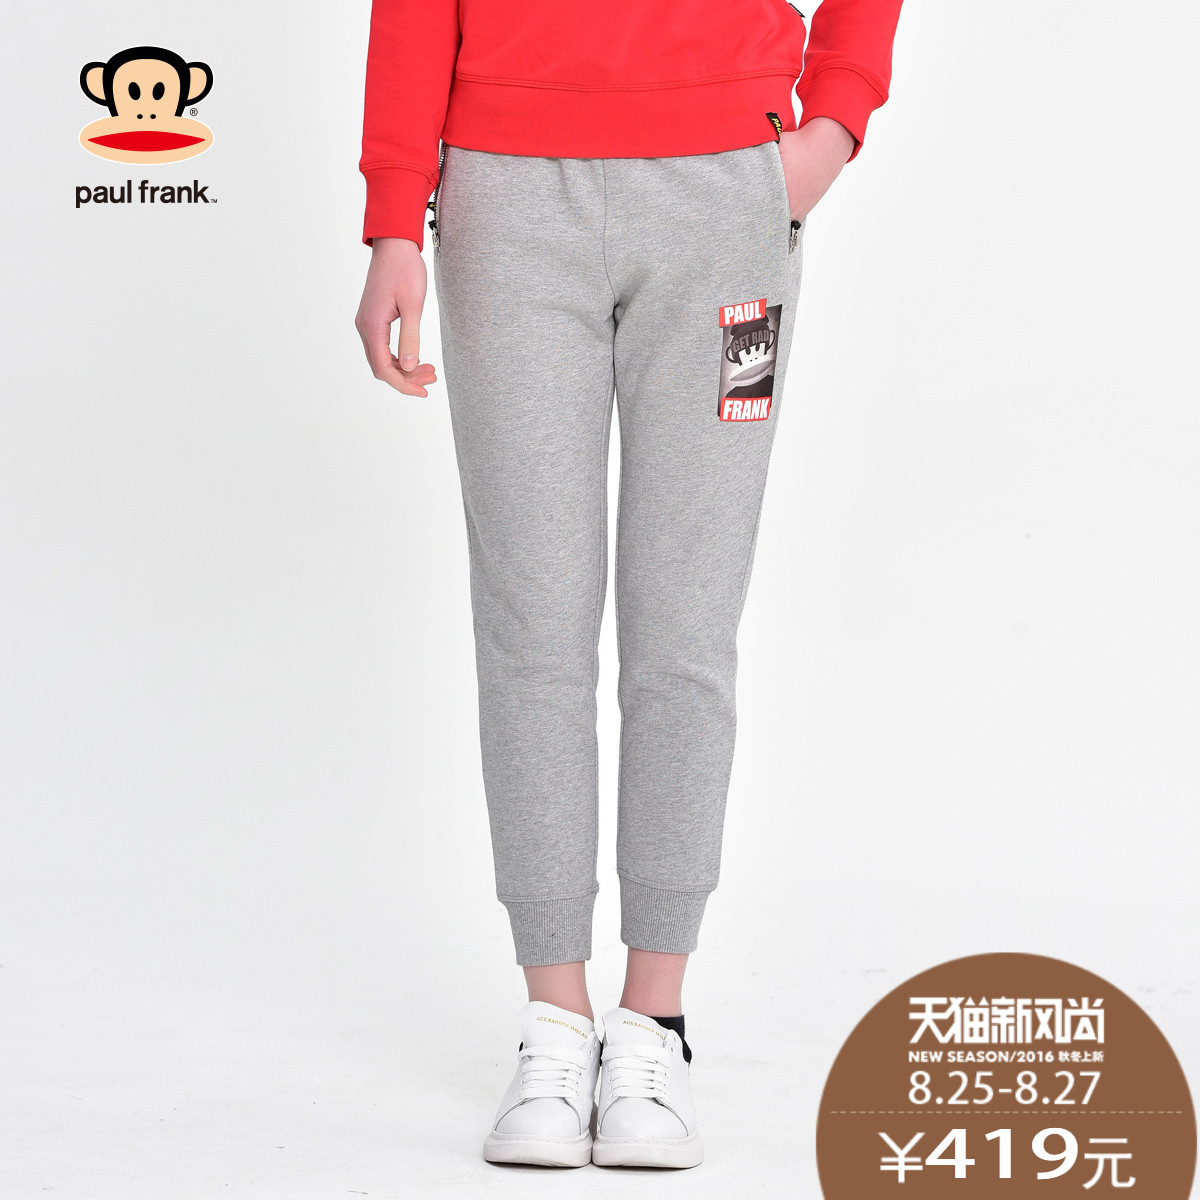 Paul frank/mouth monkey [paragraph] mall with paragraph women wei pants trousers PFAPT161043 w bz